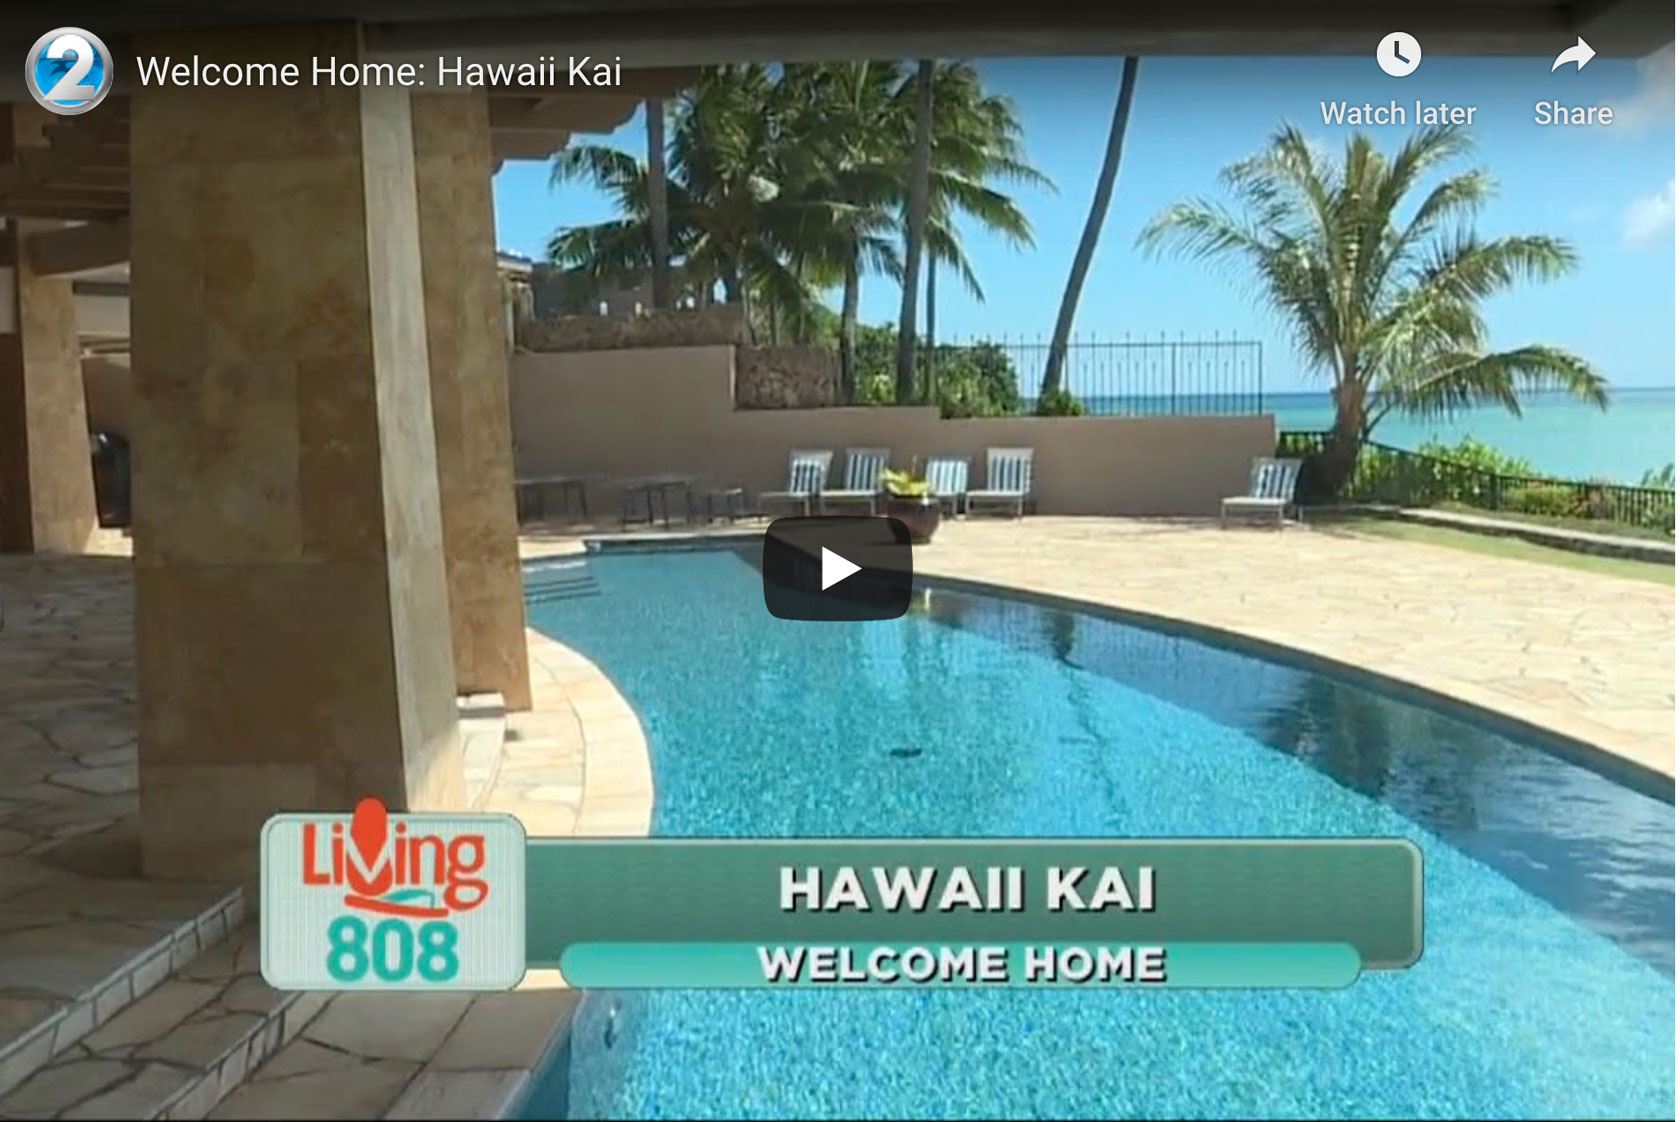 Dolores Panlilio Bediones - Watch Dolores Give a Real Estate Overview of Hawaii Kai on KHON